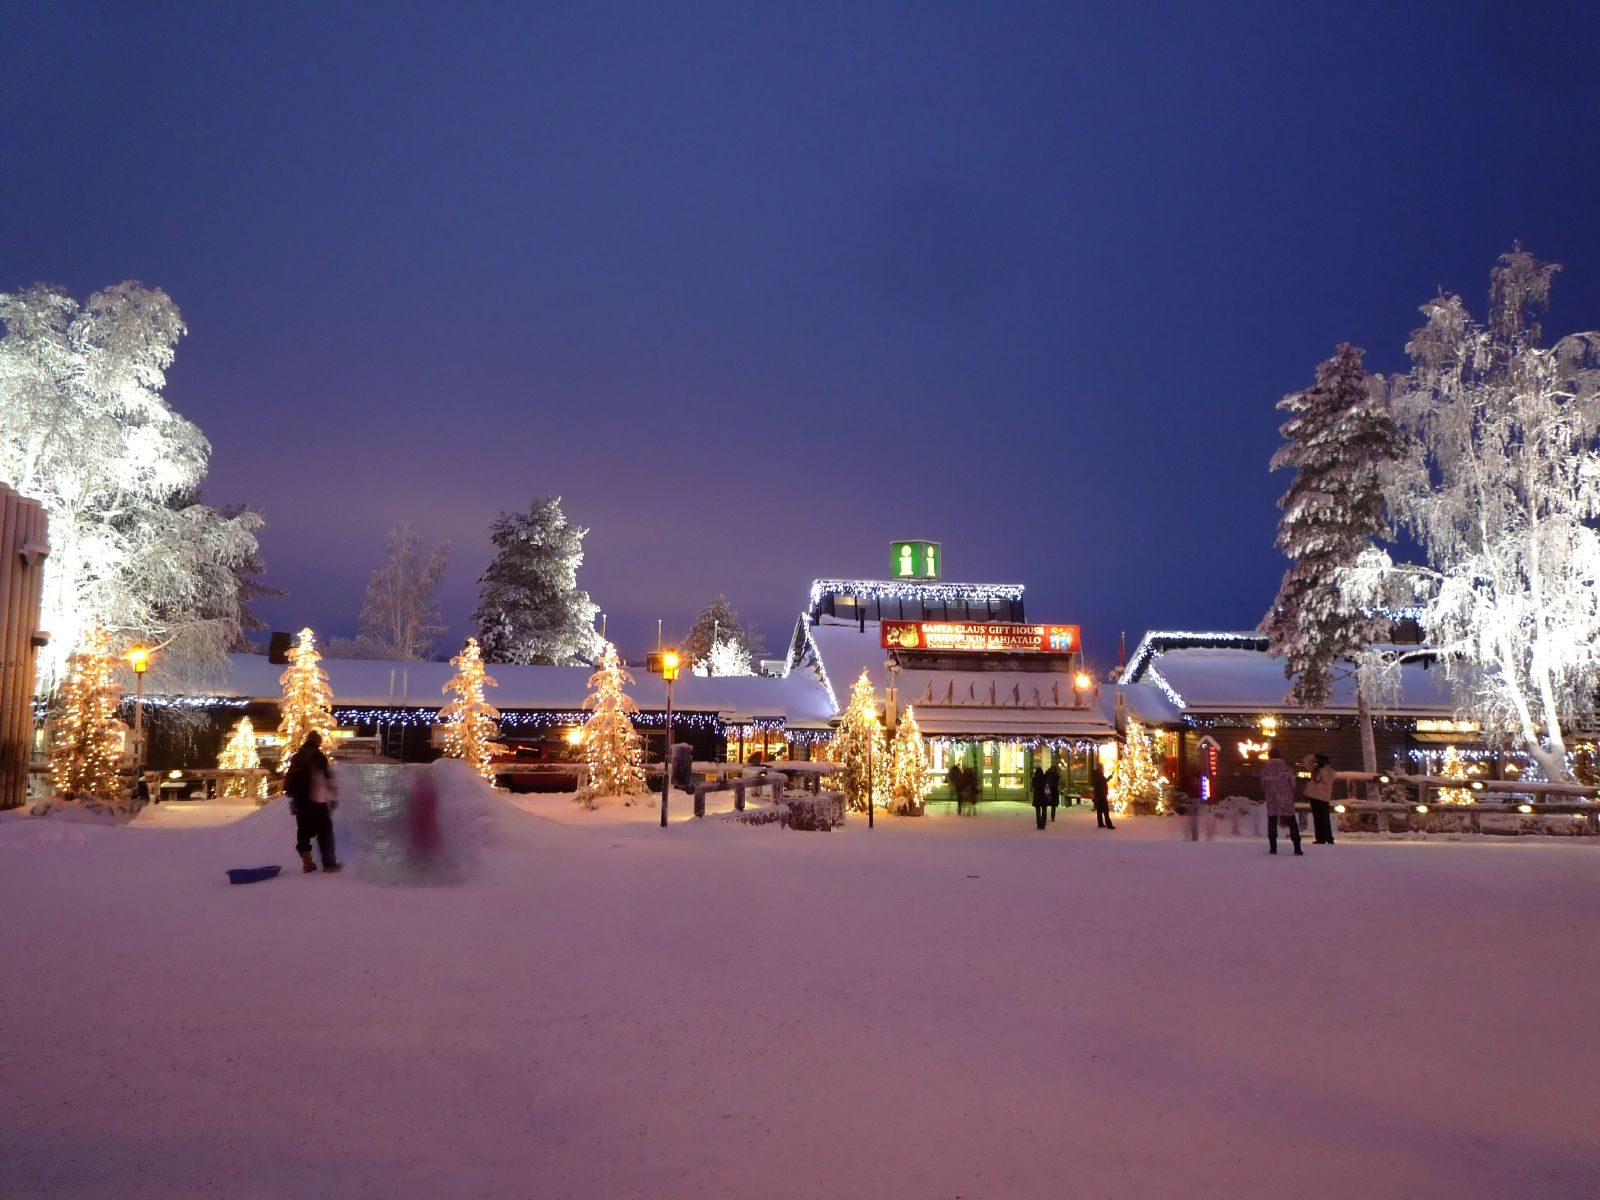 Santa Claus Village, Finland during Christmas